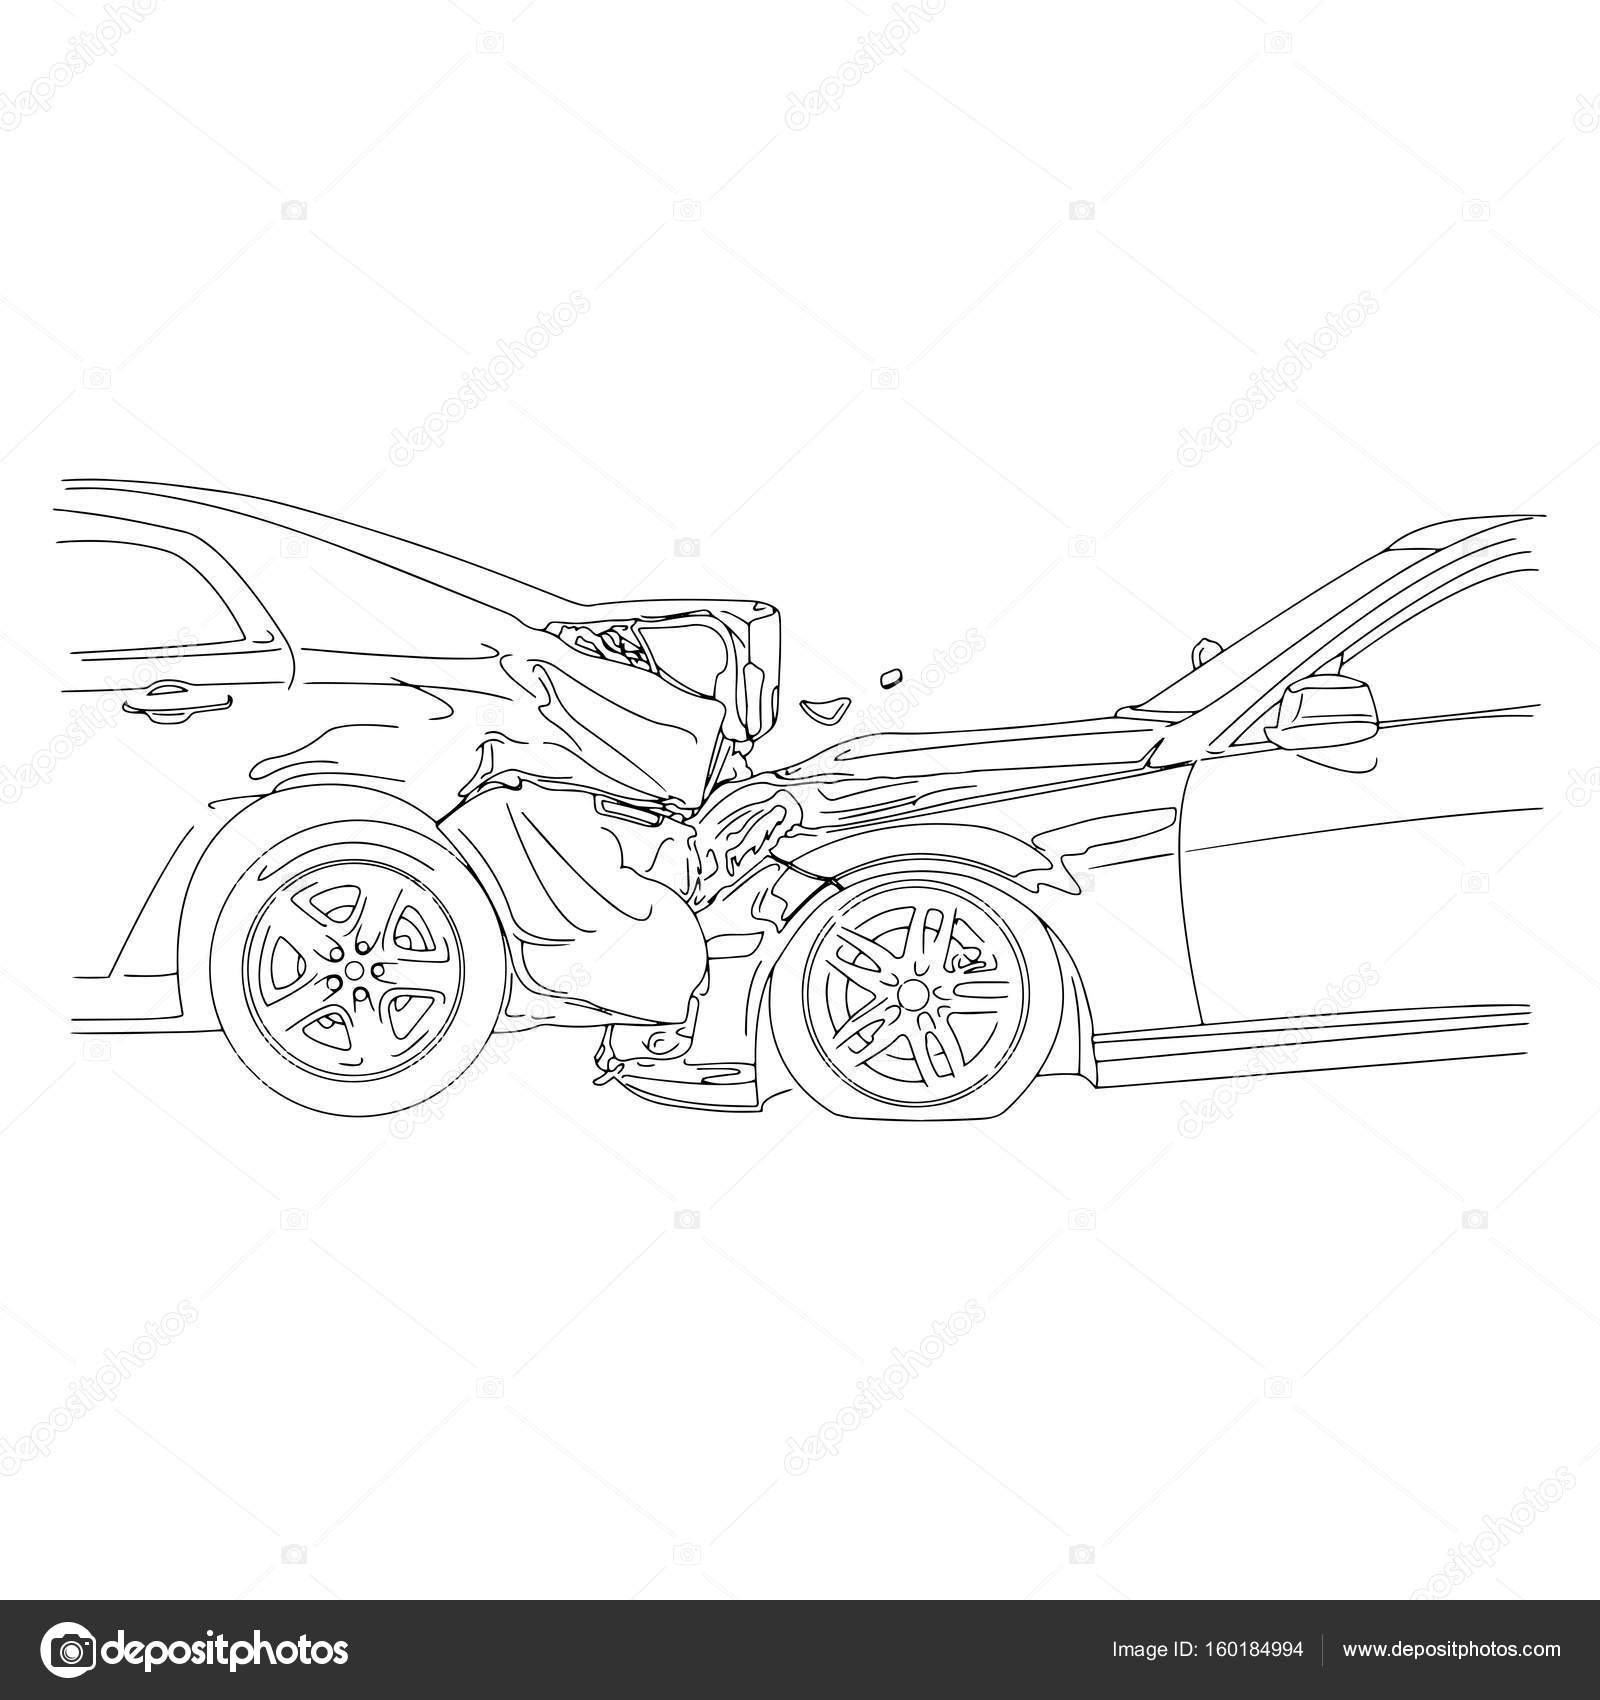 Auto accident involving two cars - vector illustration outline ...